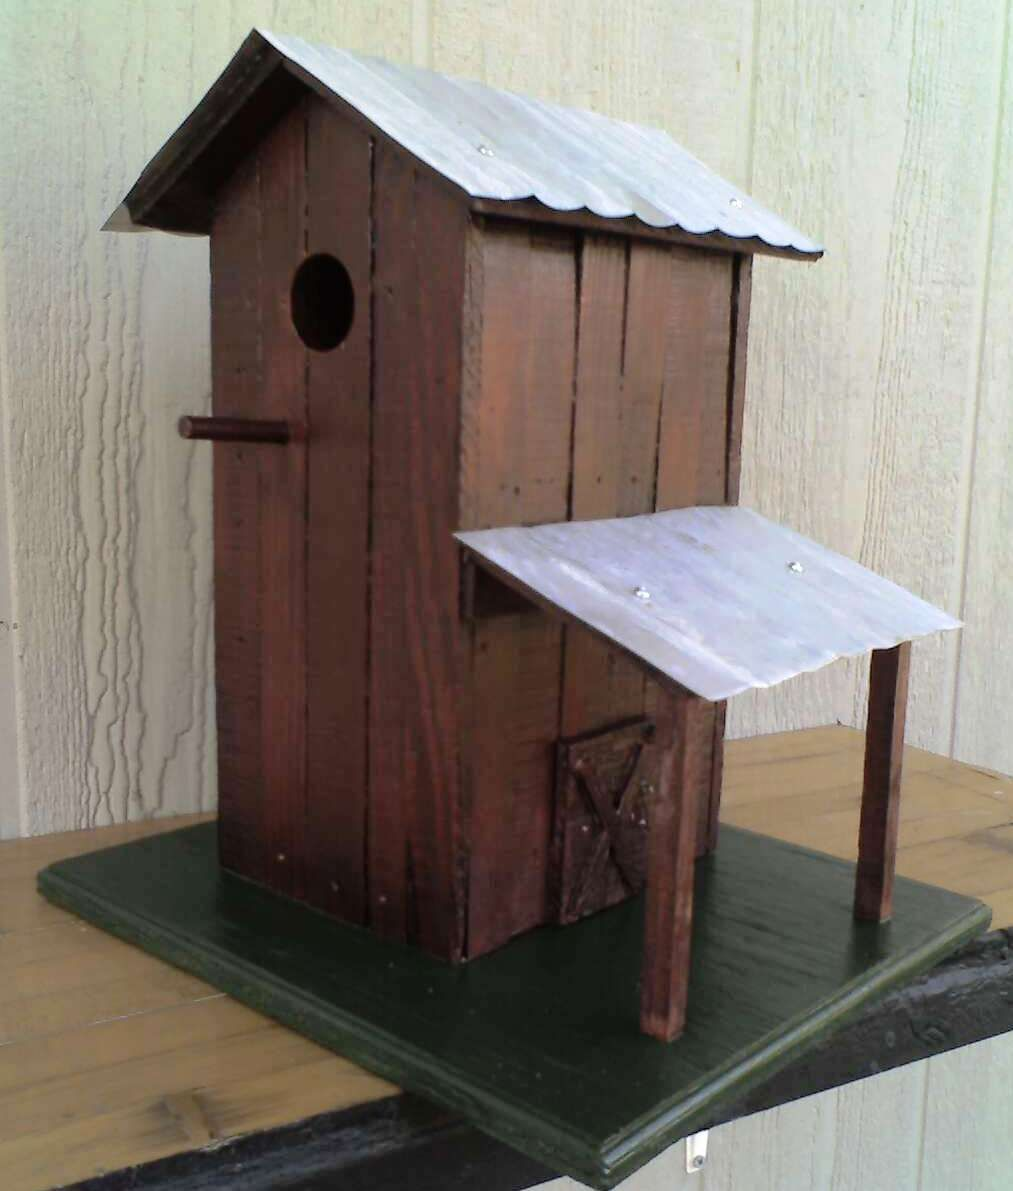 South Carolina Style Tobacco Barn Birdhouse Built Using 70 100 Year Old Sticks